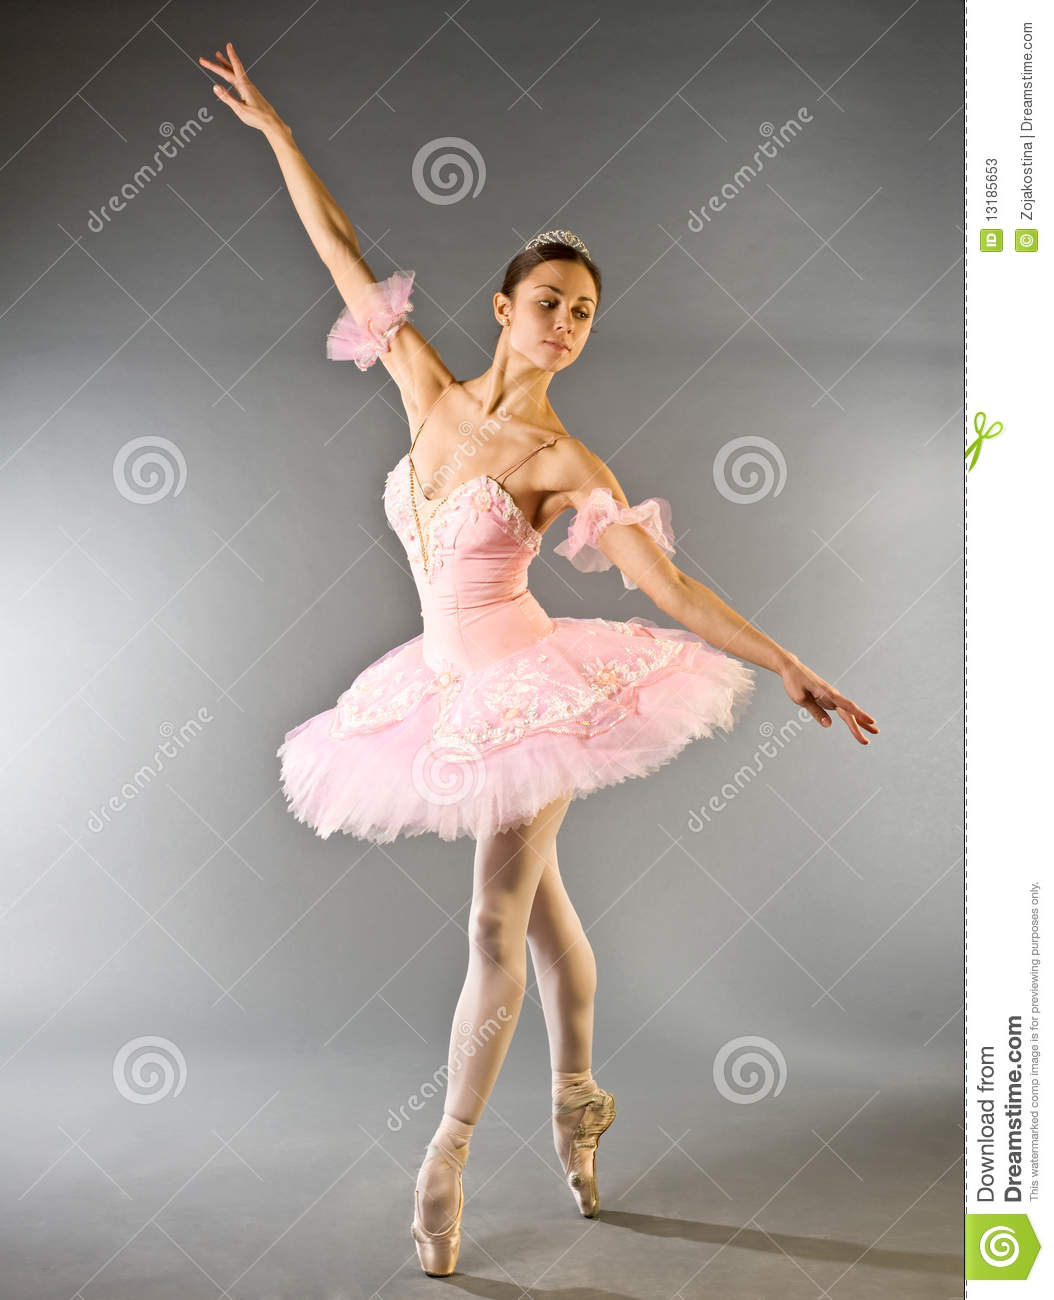 Ballerina s toe dance isolated